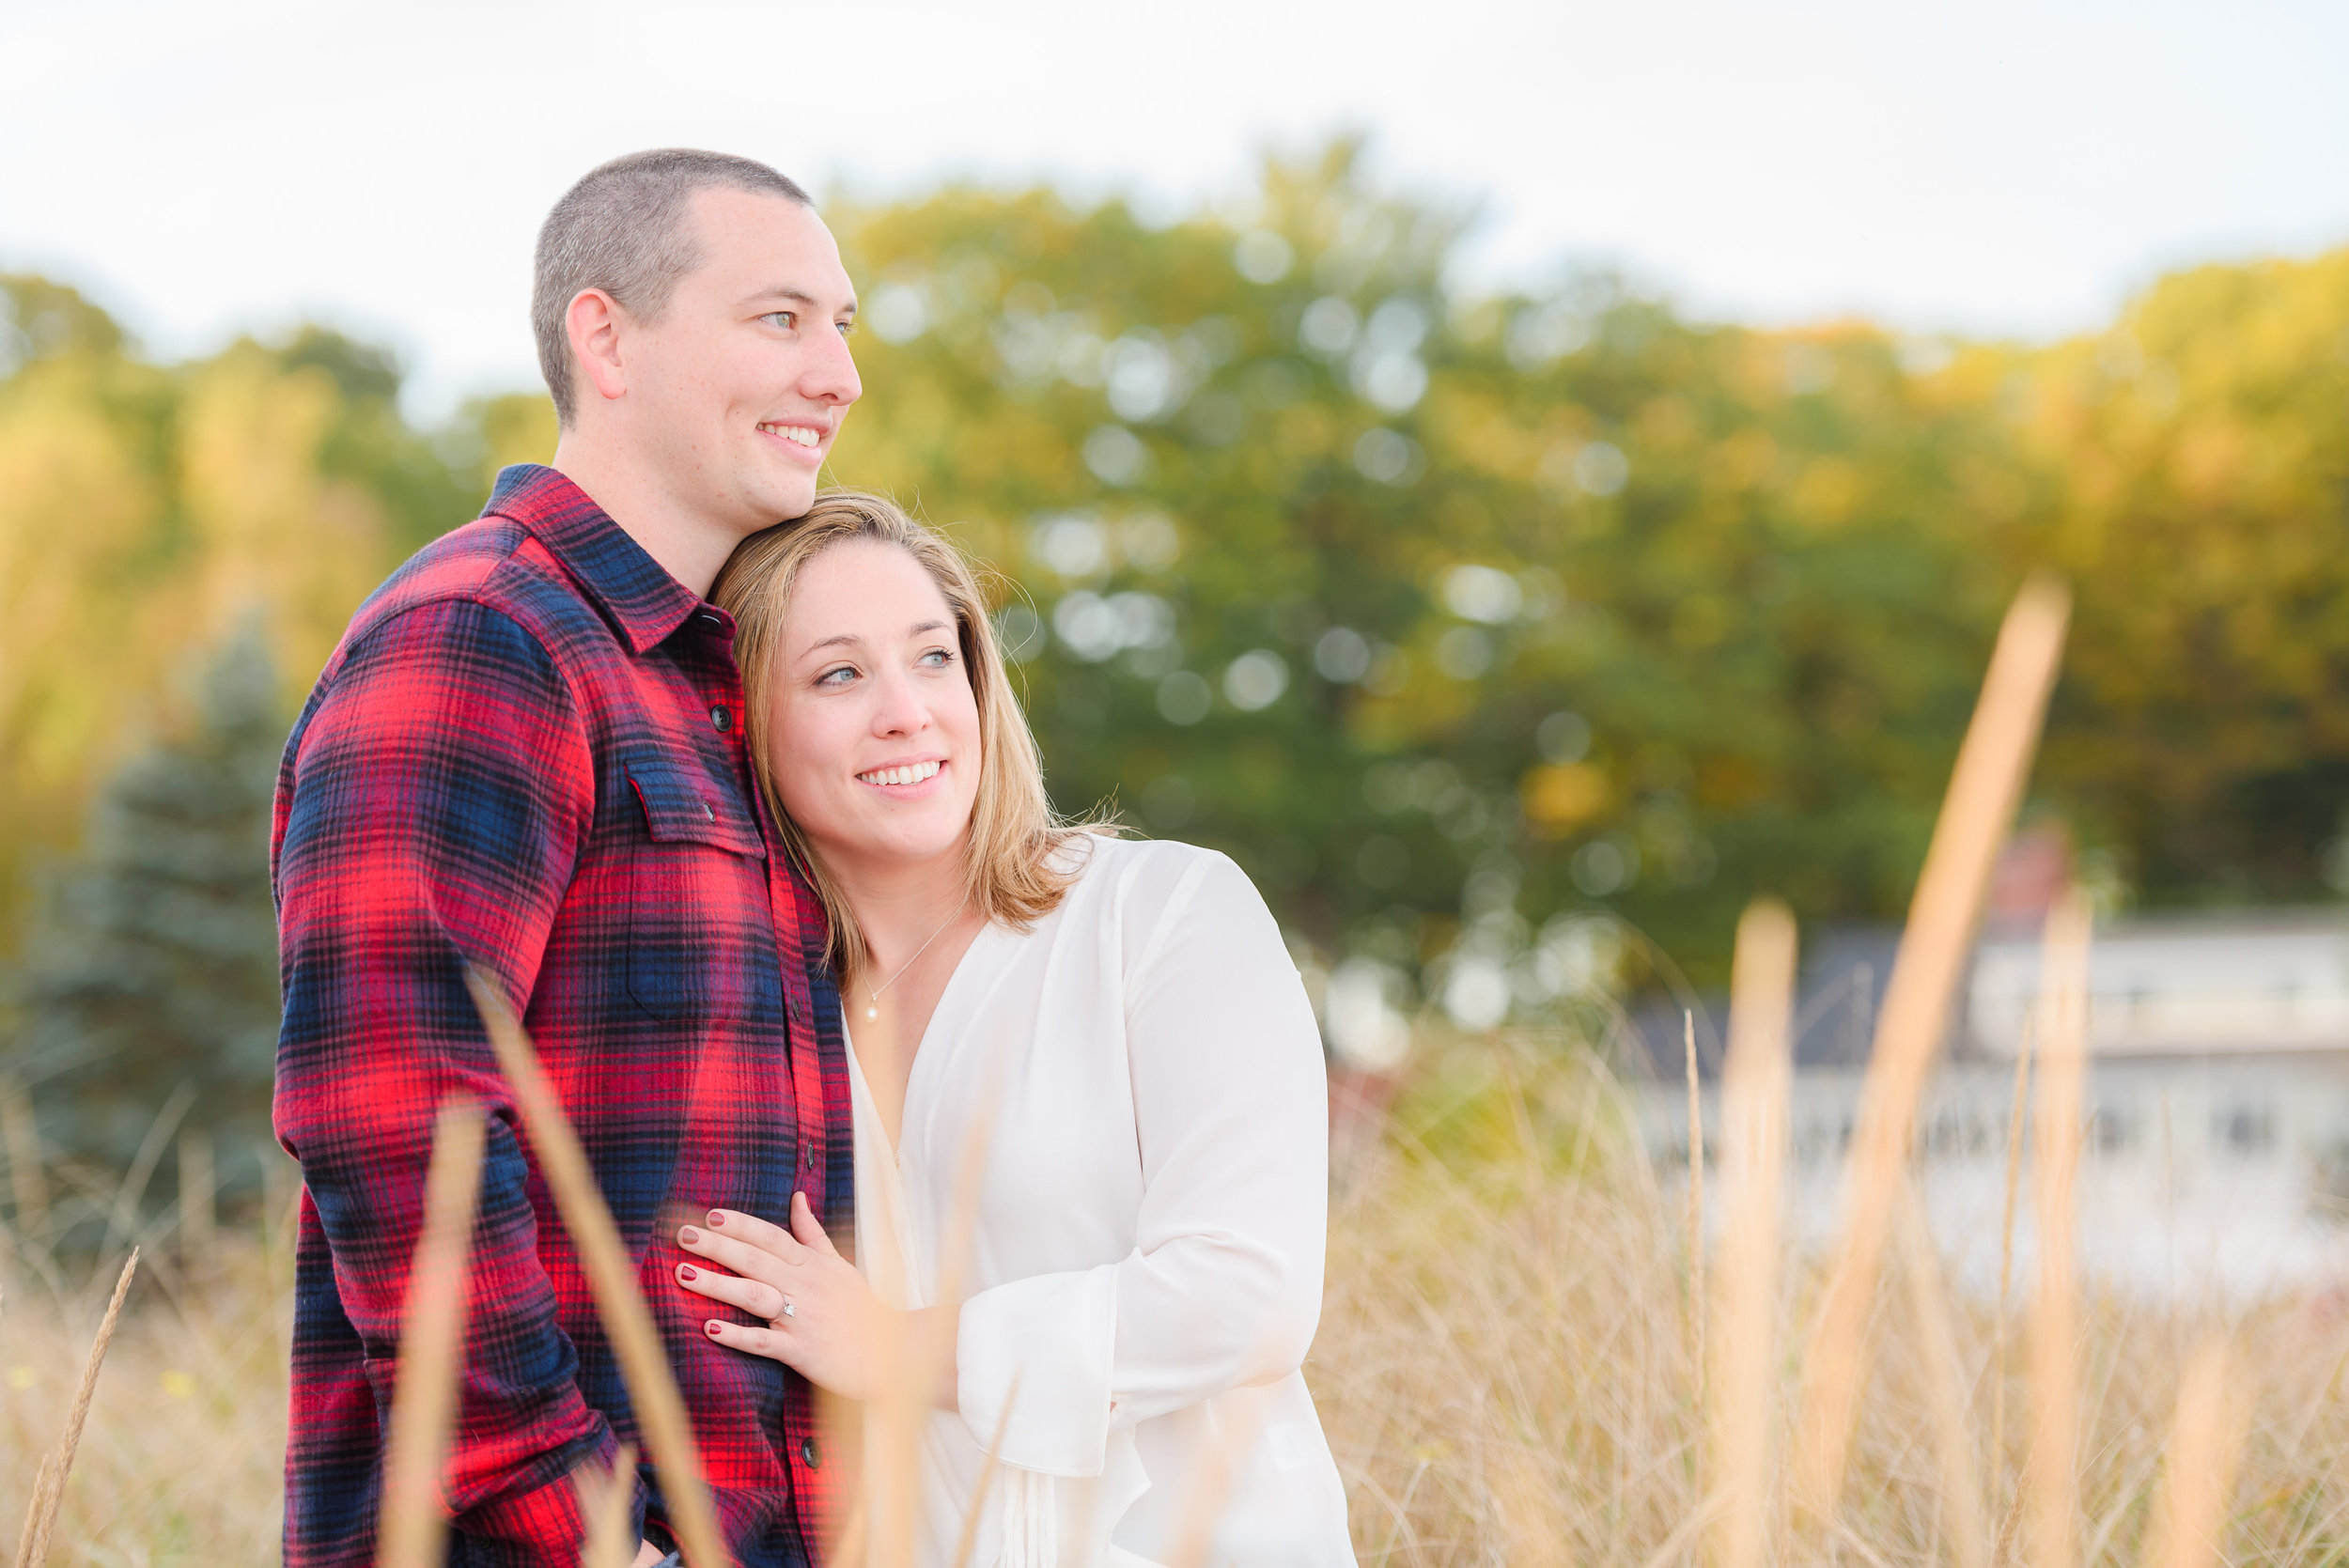 New Hampshire Outdoor Engagement Photographer | Mike Sears Photography